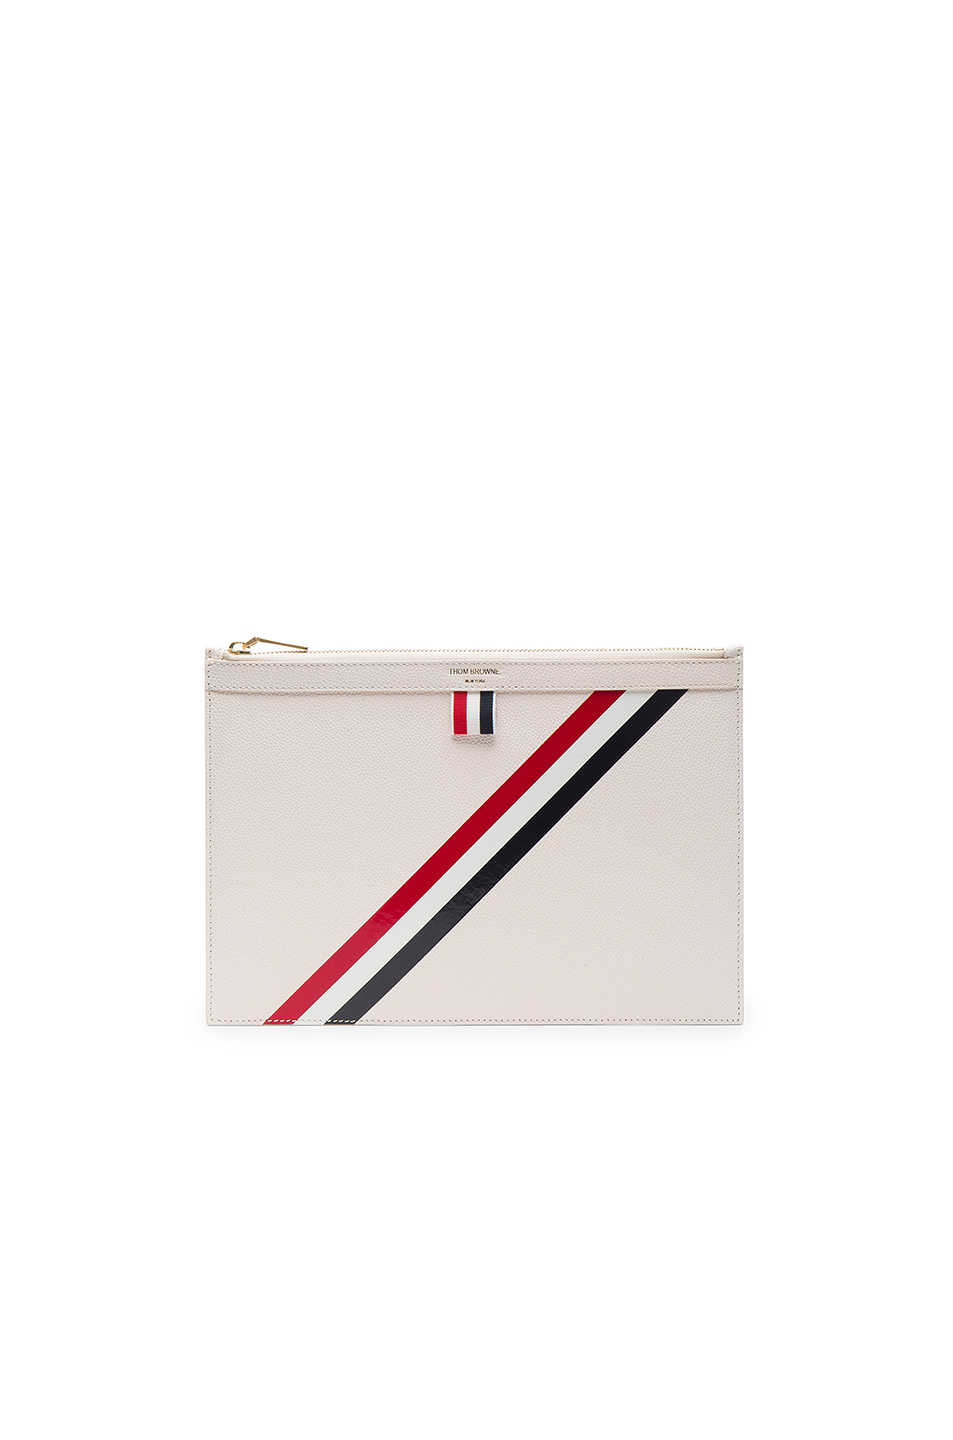 Thom Browne Small Zipper Tablet Holder in White